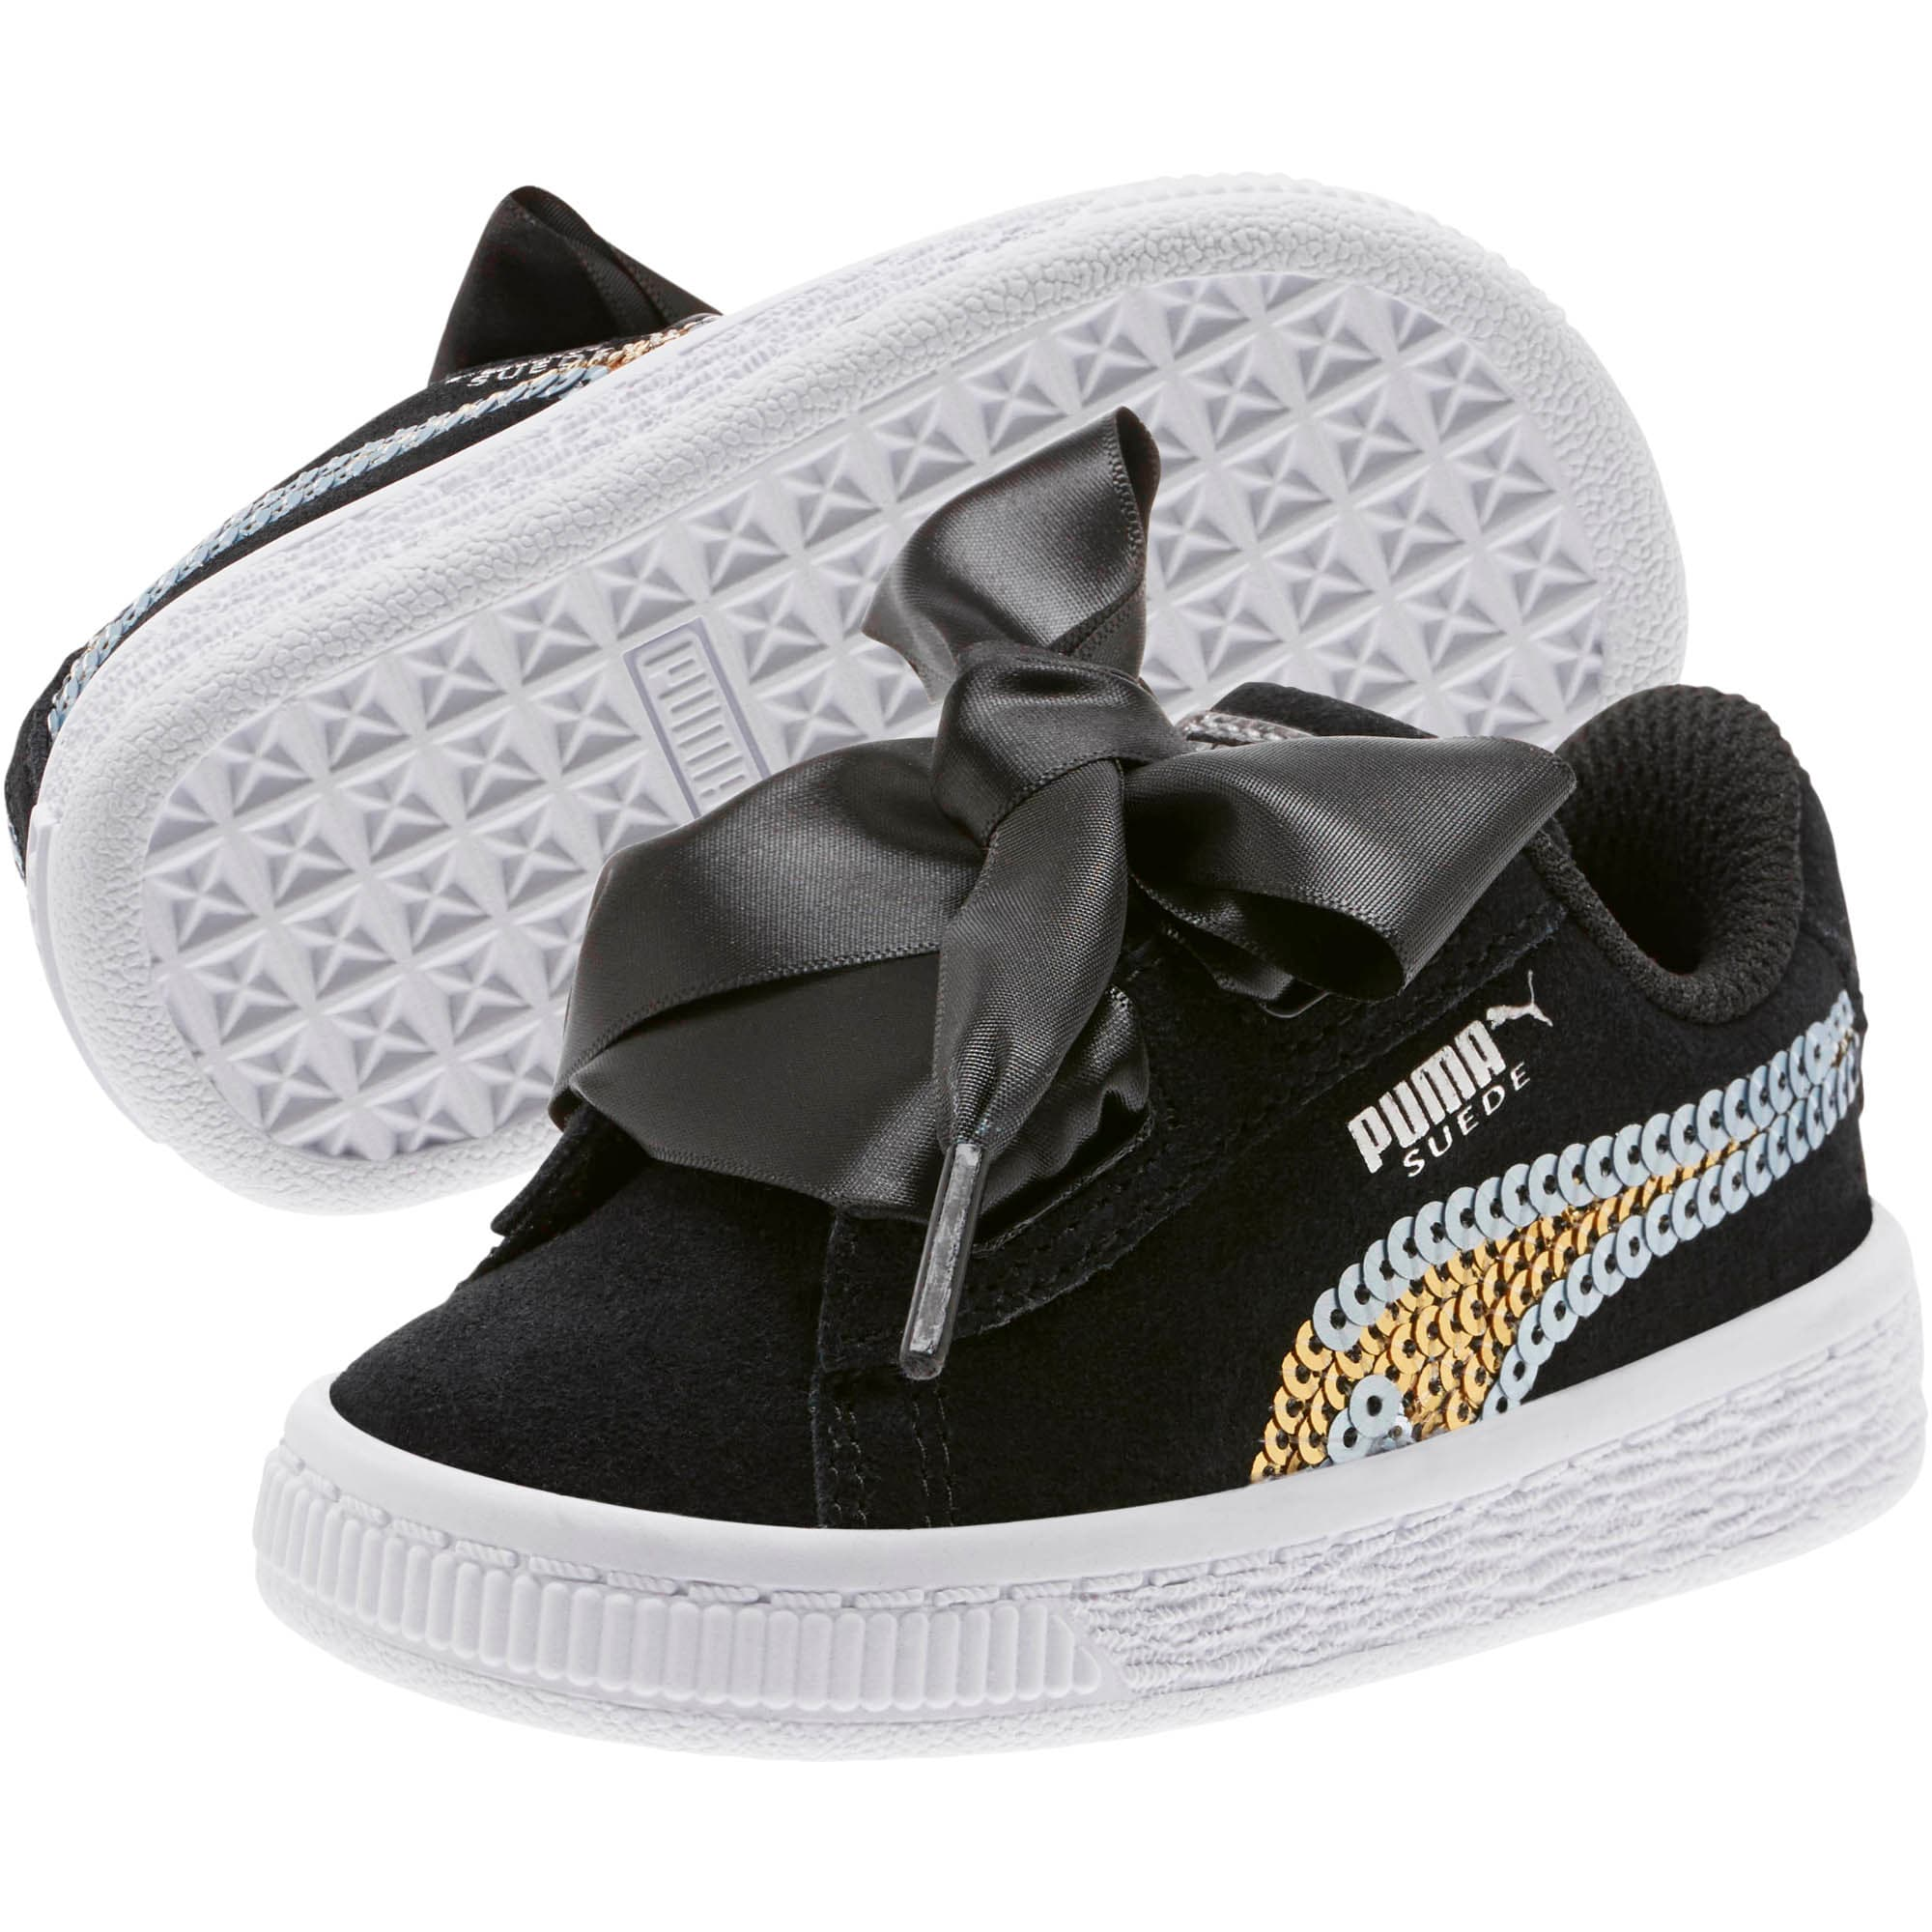 Thumbnail 2 of Suede Heart Trailblazer Sequin Little Kids' Shoes, Puma Black-Puma Team Gold, medium